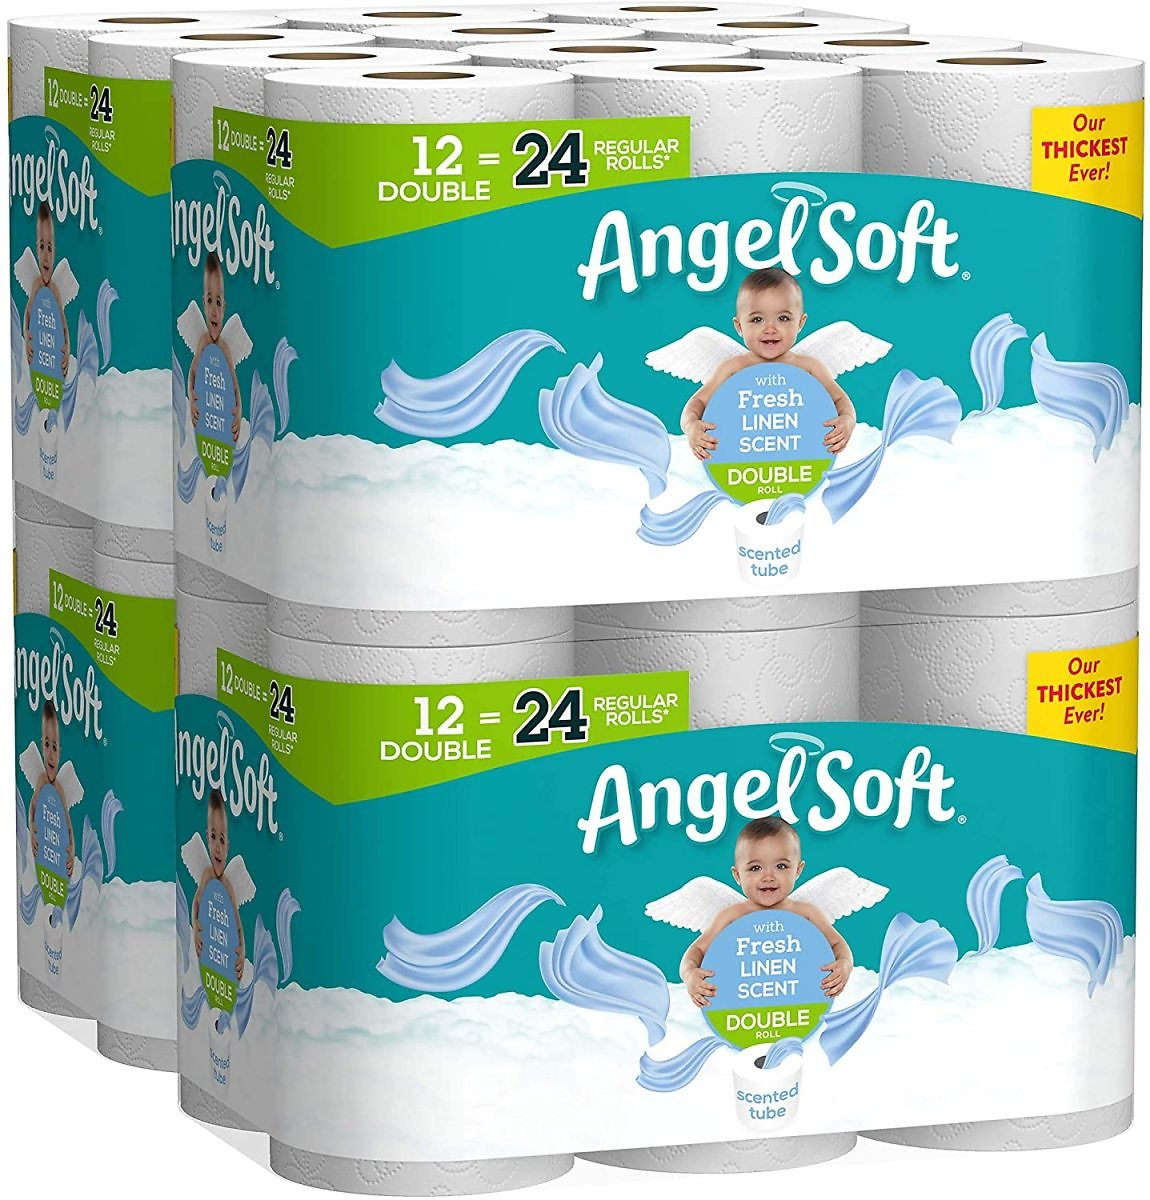 4-Pk Angel Soft Toilet Paper (12-Count)